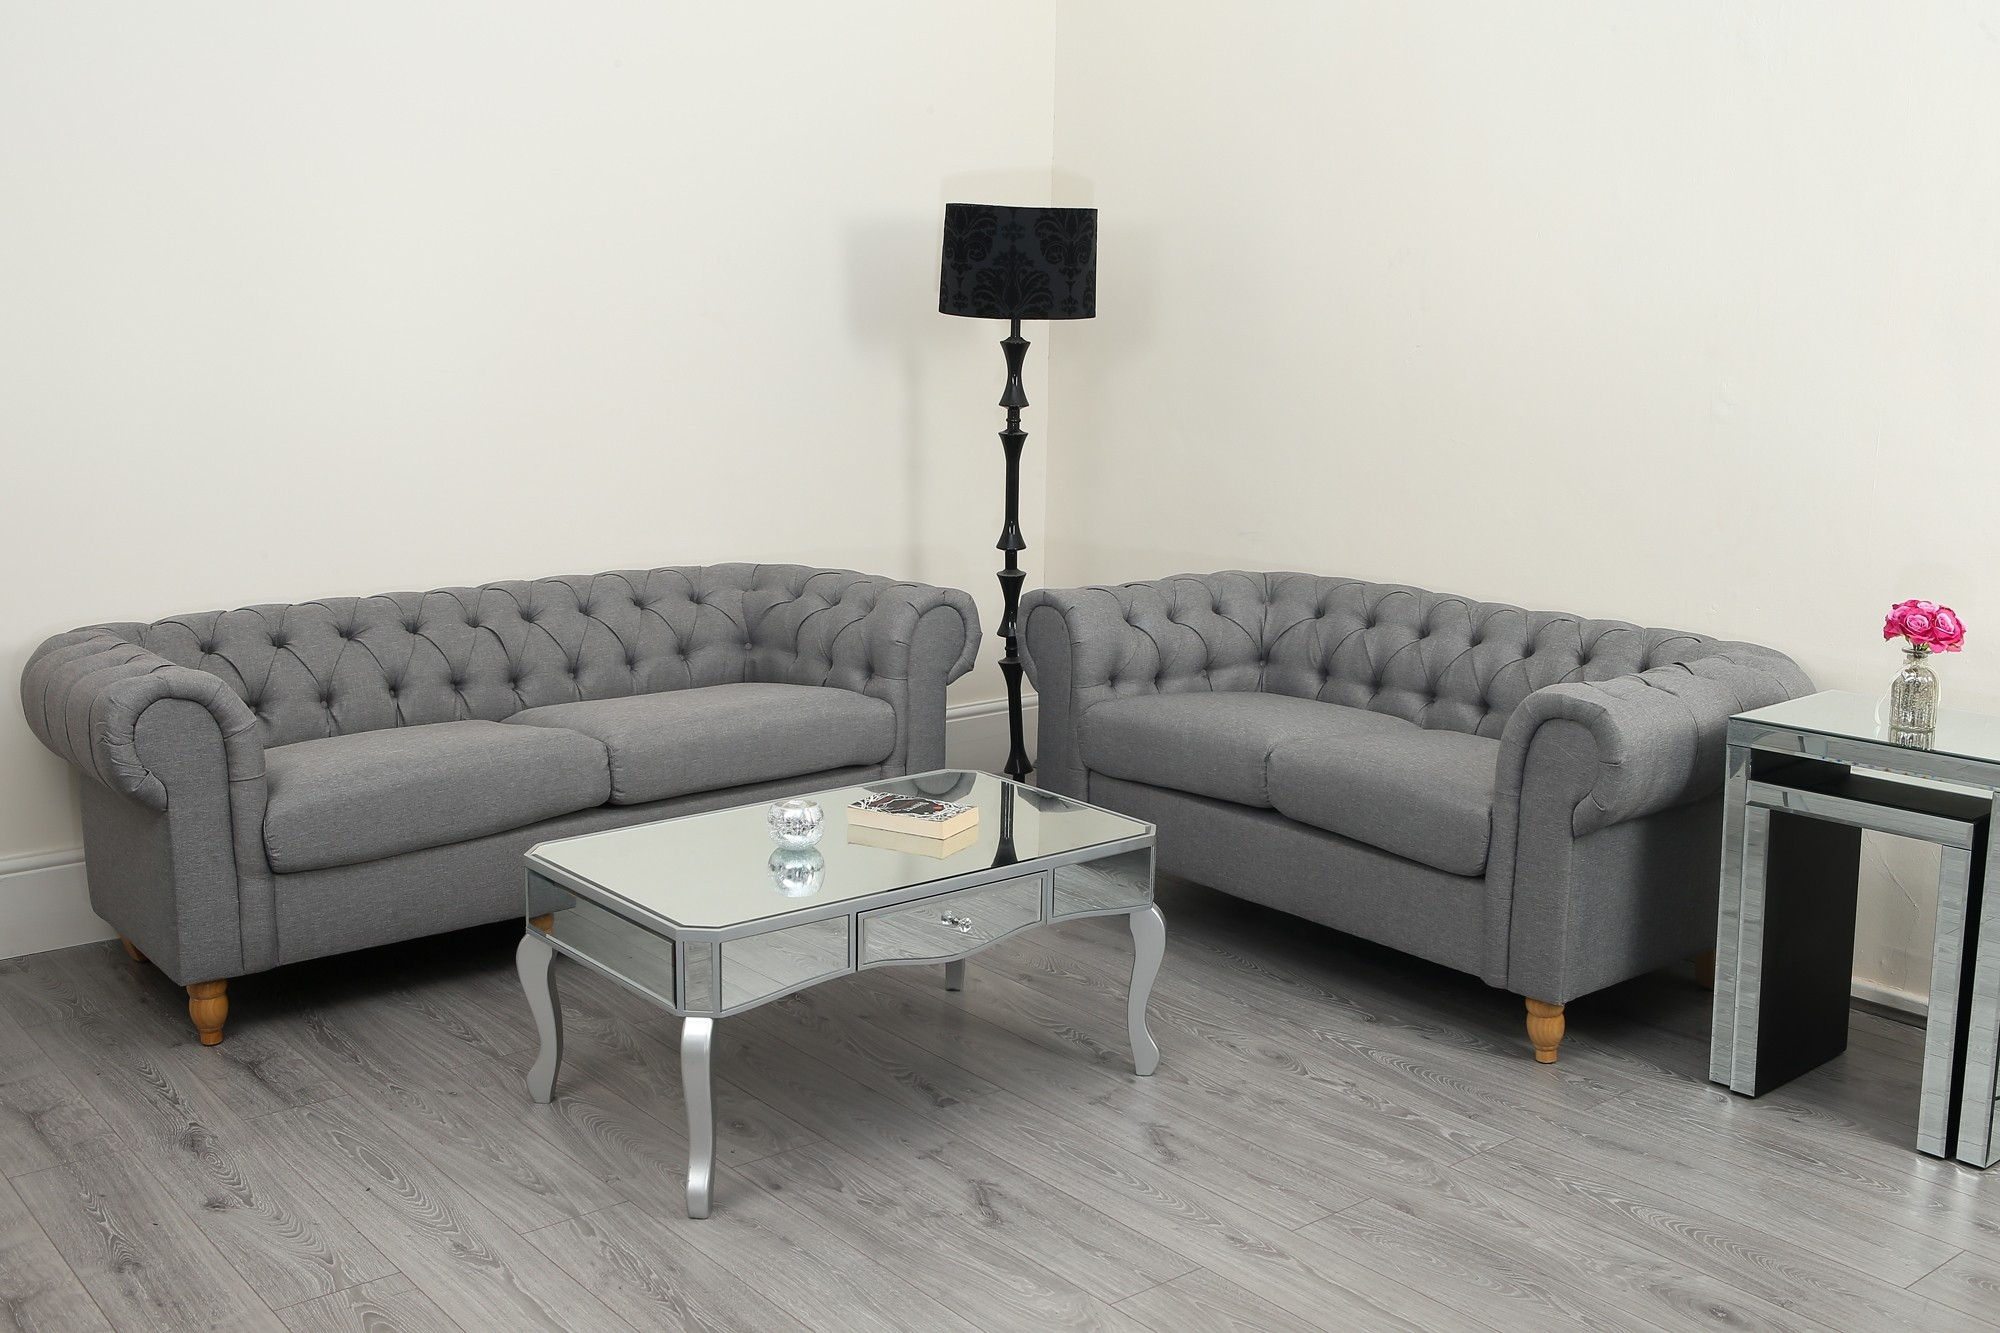 Chesterfield 3+2 Sofa Canterbury Chesterfield Grey Linen Fabric 3 2 Seater Sofa